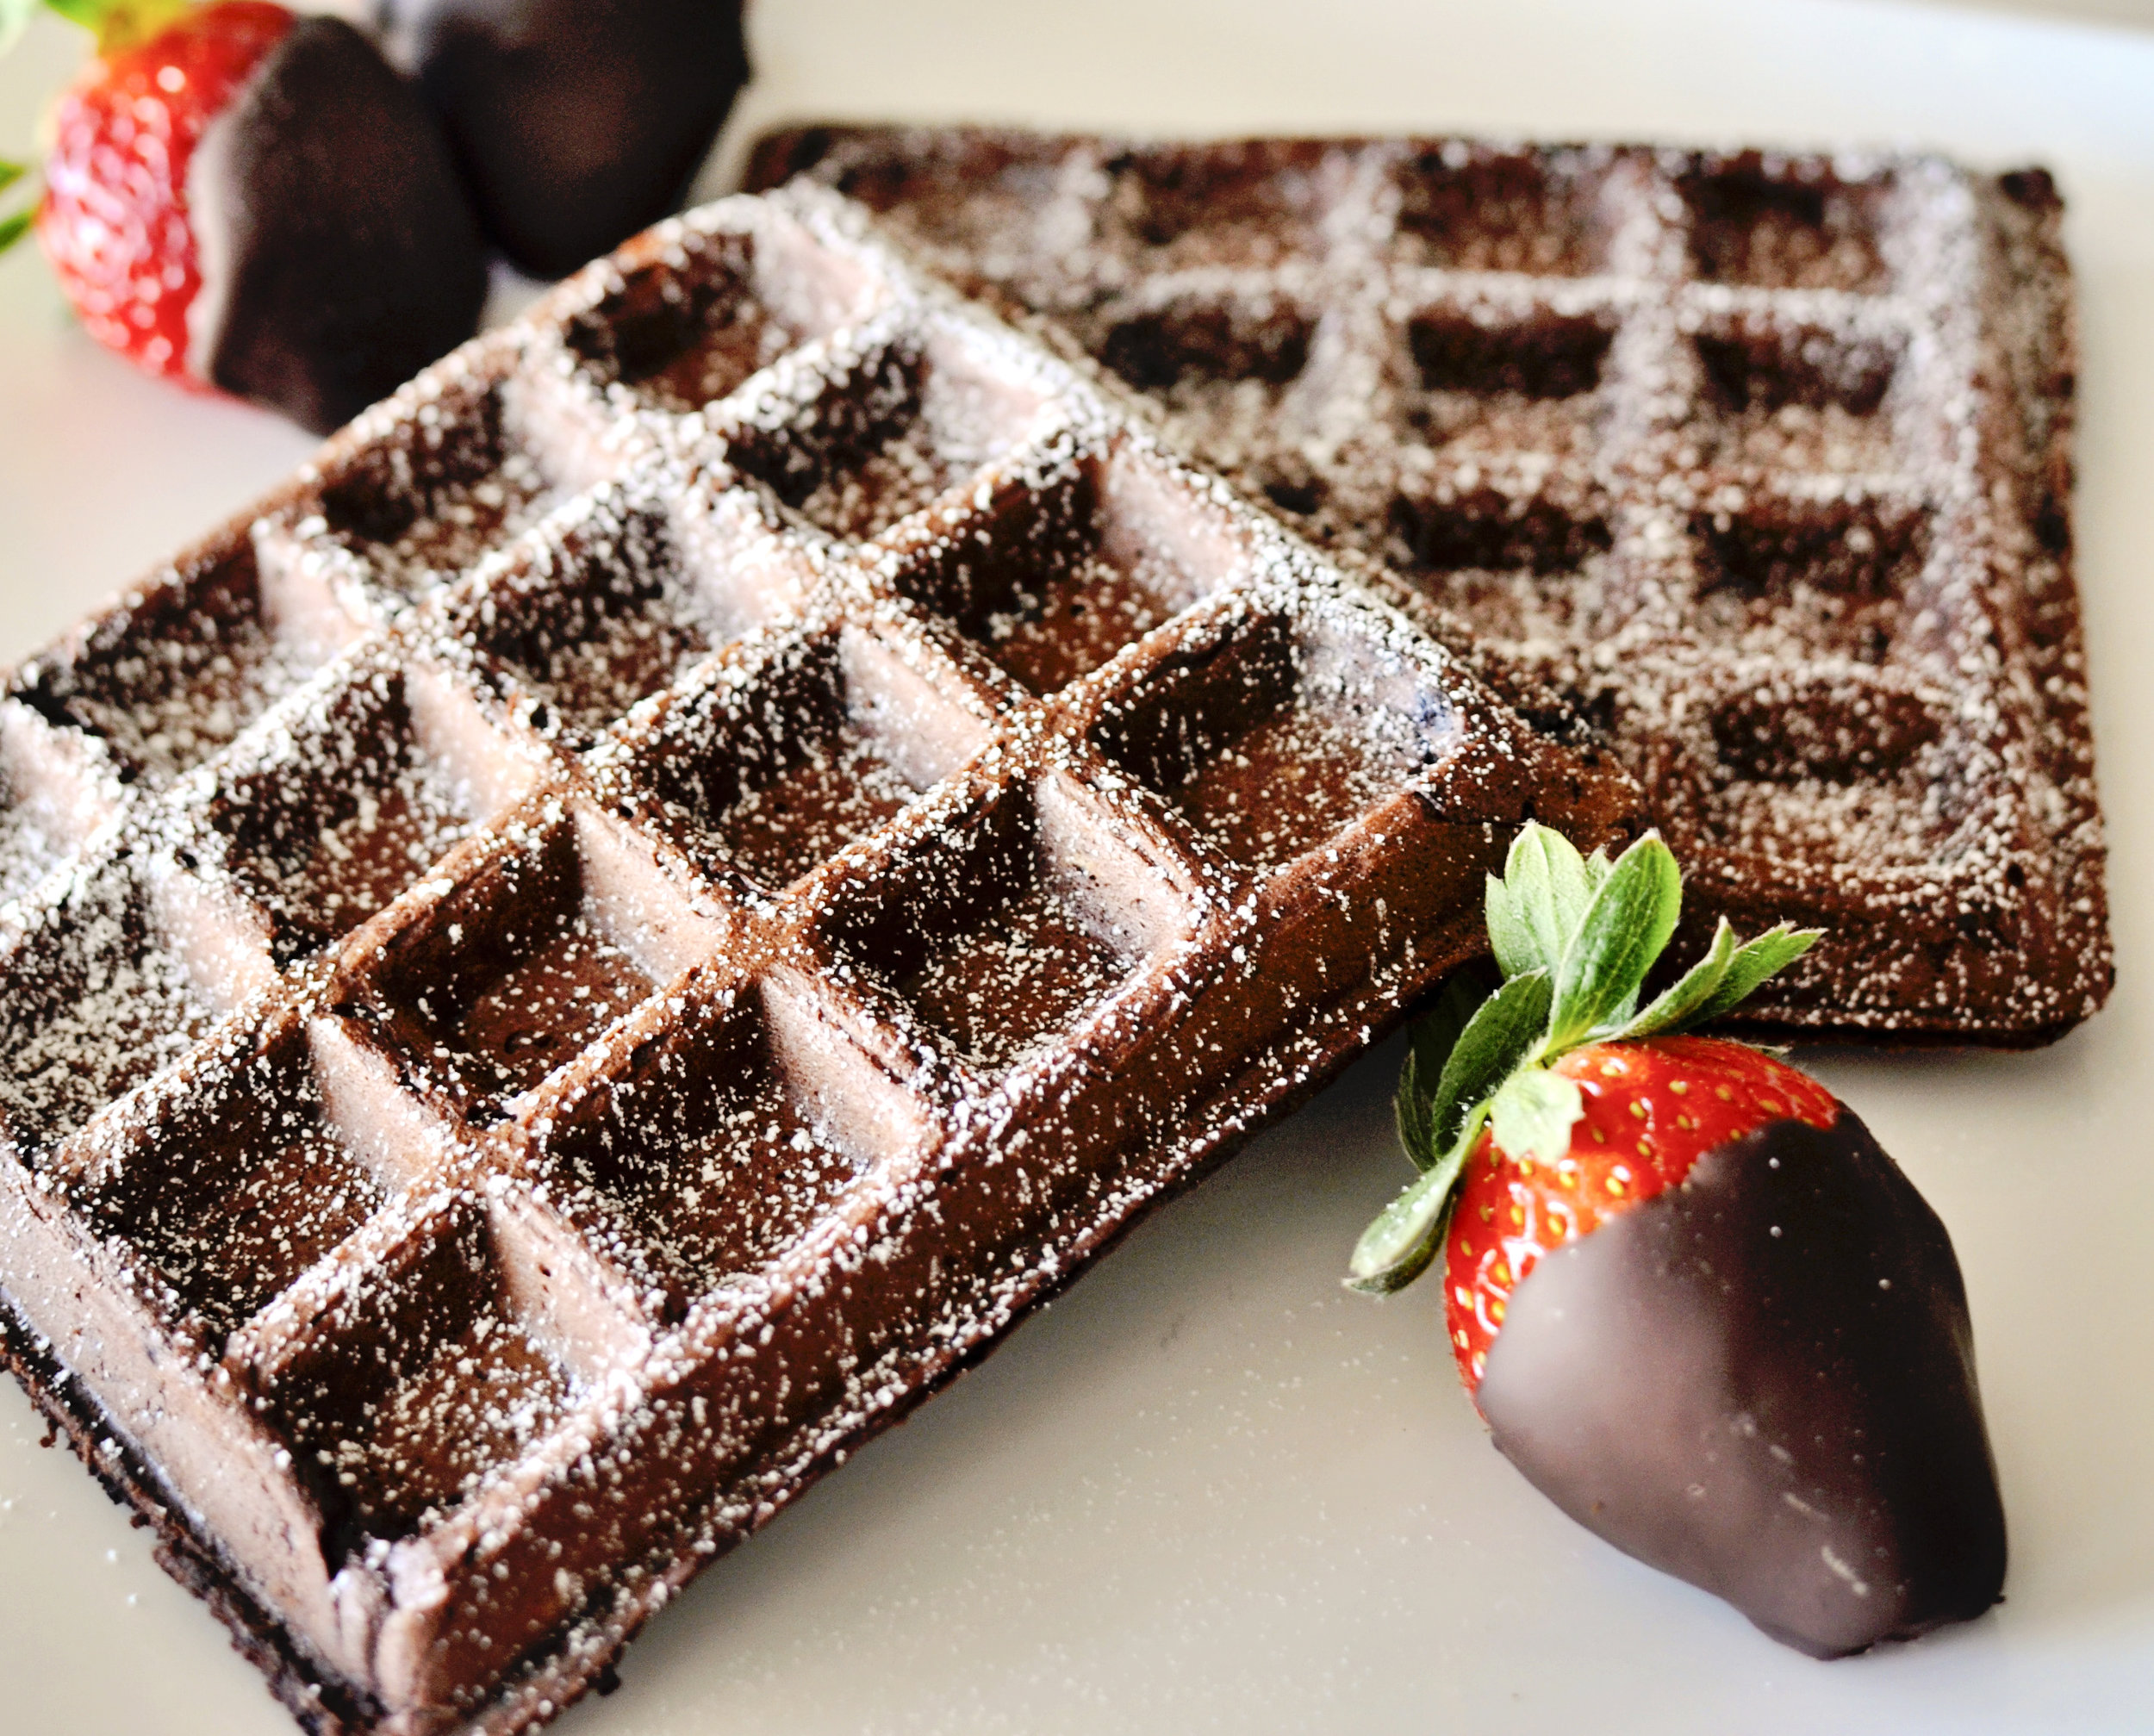 ChocolateWaffles GigiWilson.jpg